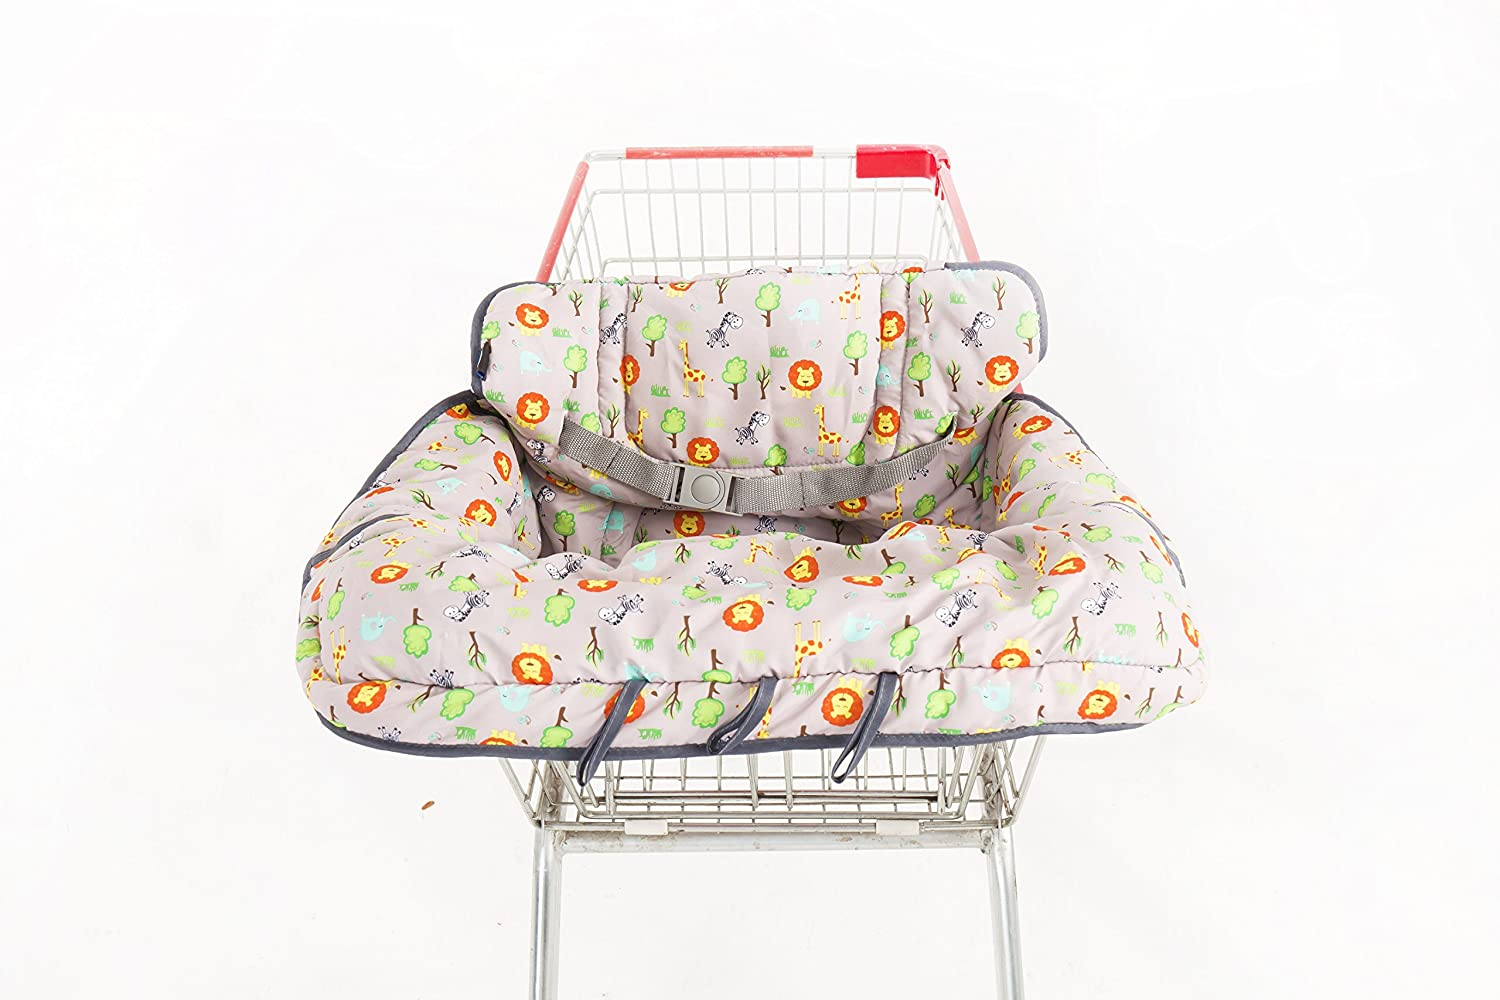 2-in-1 Shopping Cart Cover for Baby/Toddler with Free Baby Infant Training Toothbrush - High Chair Cover - Germ Protection Material - Unisex Design - Machine Washable - Compact Carry Bag Folding MyTickles